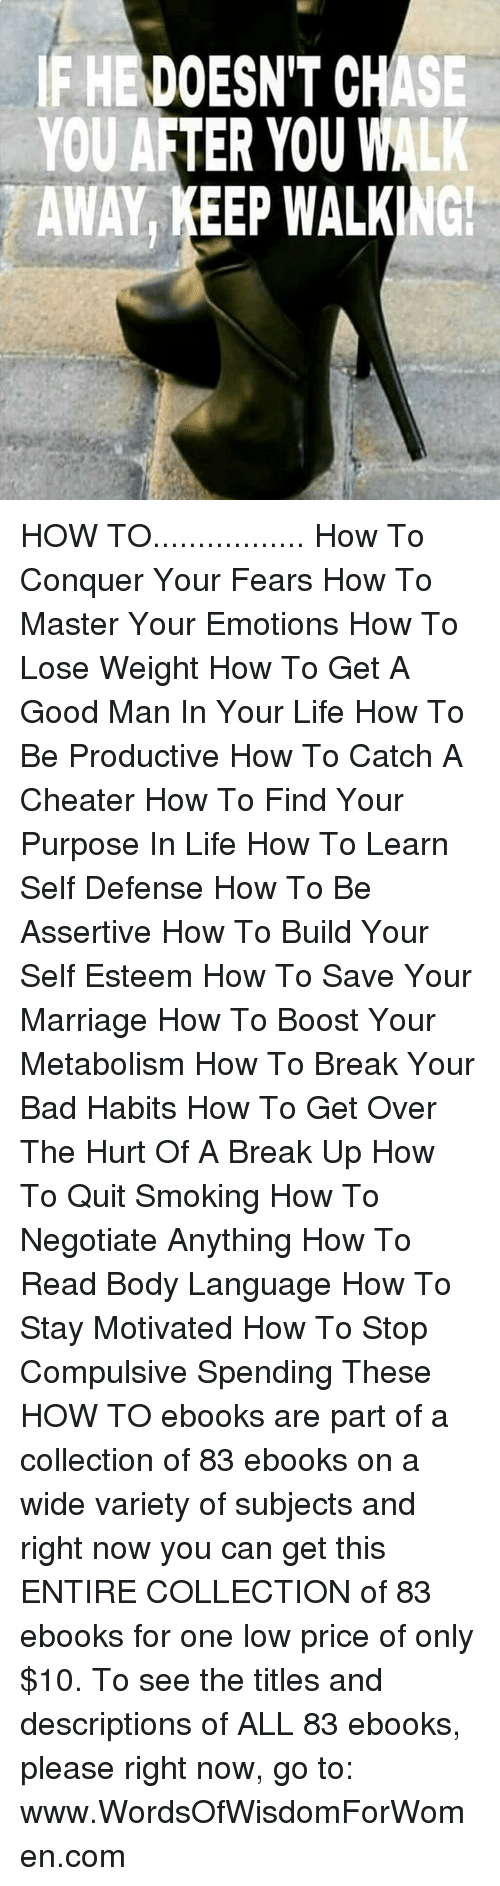 how to lose weight: DOESN'T CH  TER YOU W  KEEP WALKING! HOW TO................. How To Conquer Your Fears How To Master Your Emotions How To Lose Weight How To Get A Good Man In Your Life  How To Be Productive  How To Catch A Cheater  How To Find Your Purpose In Life  How To Learn Self Defense How To Be Assertive   How To Build Your Self Esteem   How To Save Your Marriage  How To Boost Your Metabolism  How To Break Your Bad Habits   How To Get Over The Hurt Of A Break Up  How To Quit Smoking  How To Negotiate Anything  How To Read Body Language   How To Stay Motivated  How To Stop Compulsive Spending    These HOW TO ebooks are part of a collection of 83 ebooks on a wide variety of subjects and right now you can get this ENTIRE COLLECTION of 83 ebooks for one low price of only $10. To see the titles and descriptions of ALL 83 ebooks, please right now, go to: www.WordsOfWisdomForWomen.com